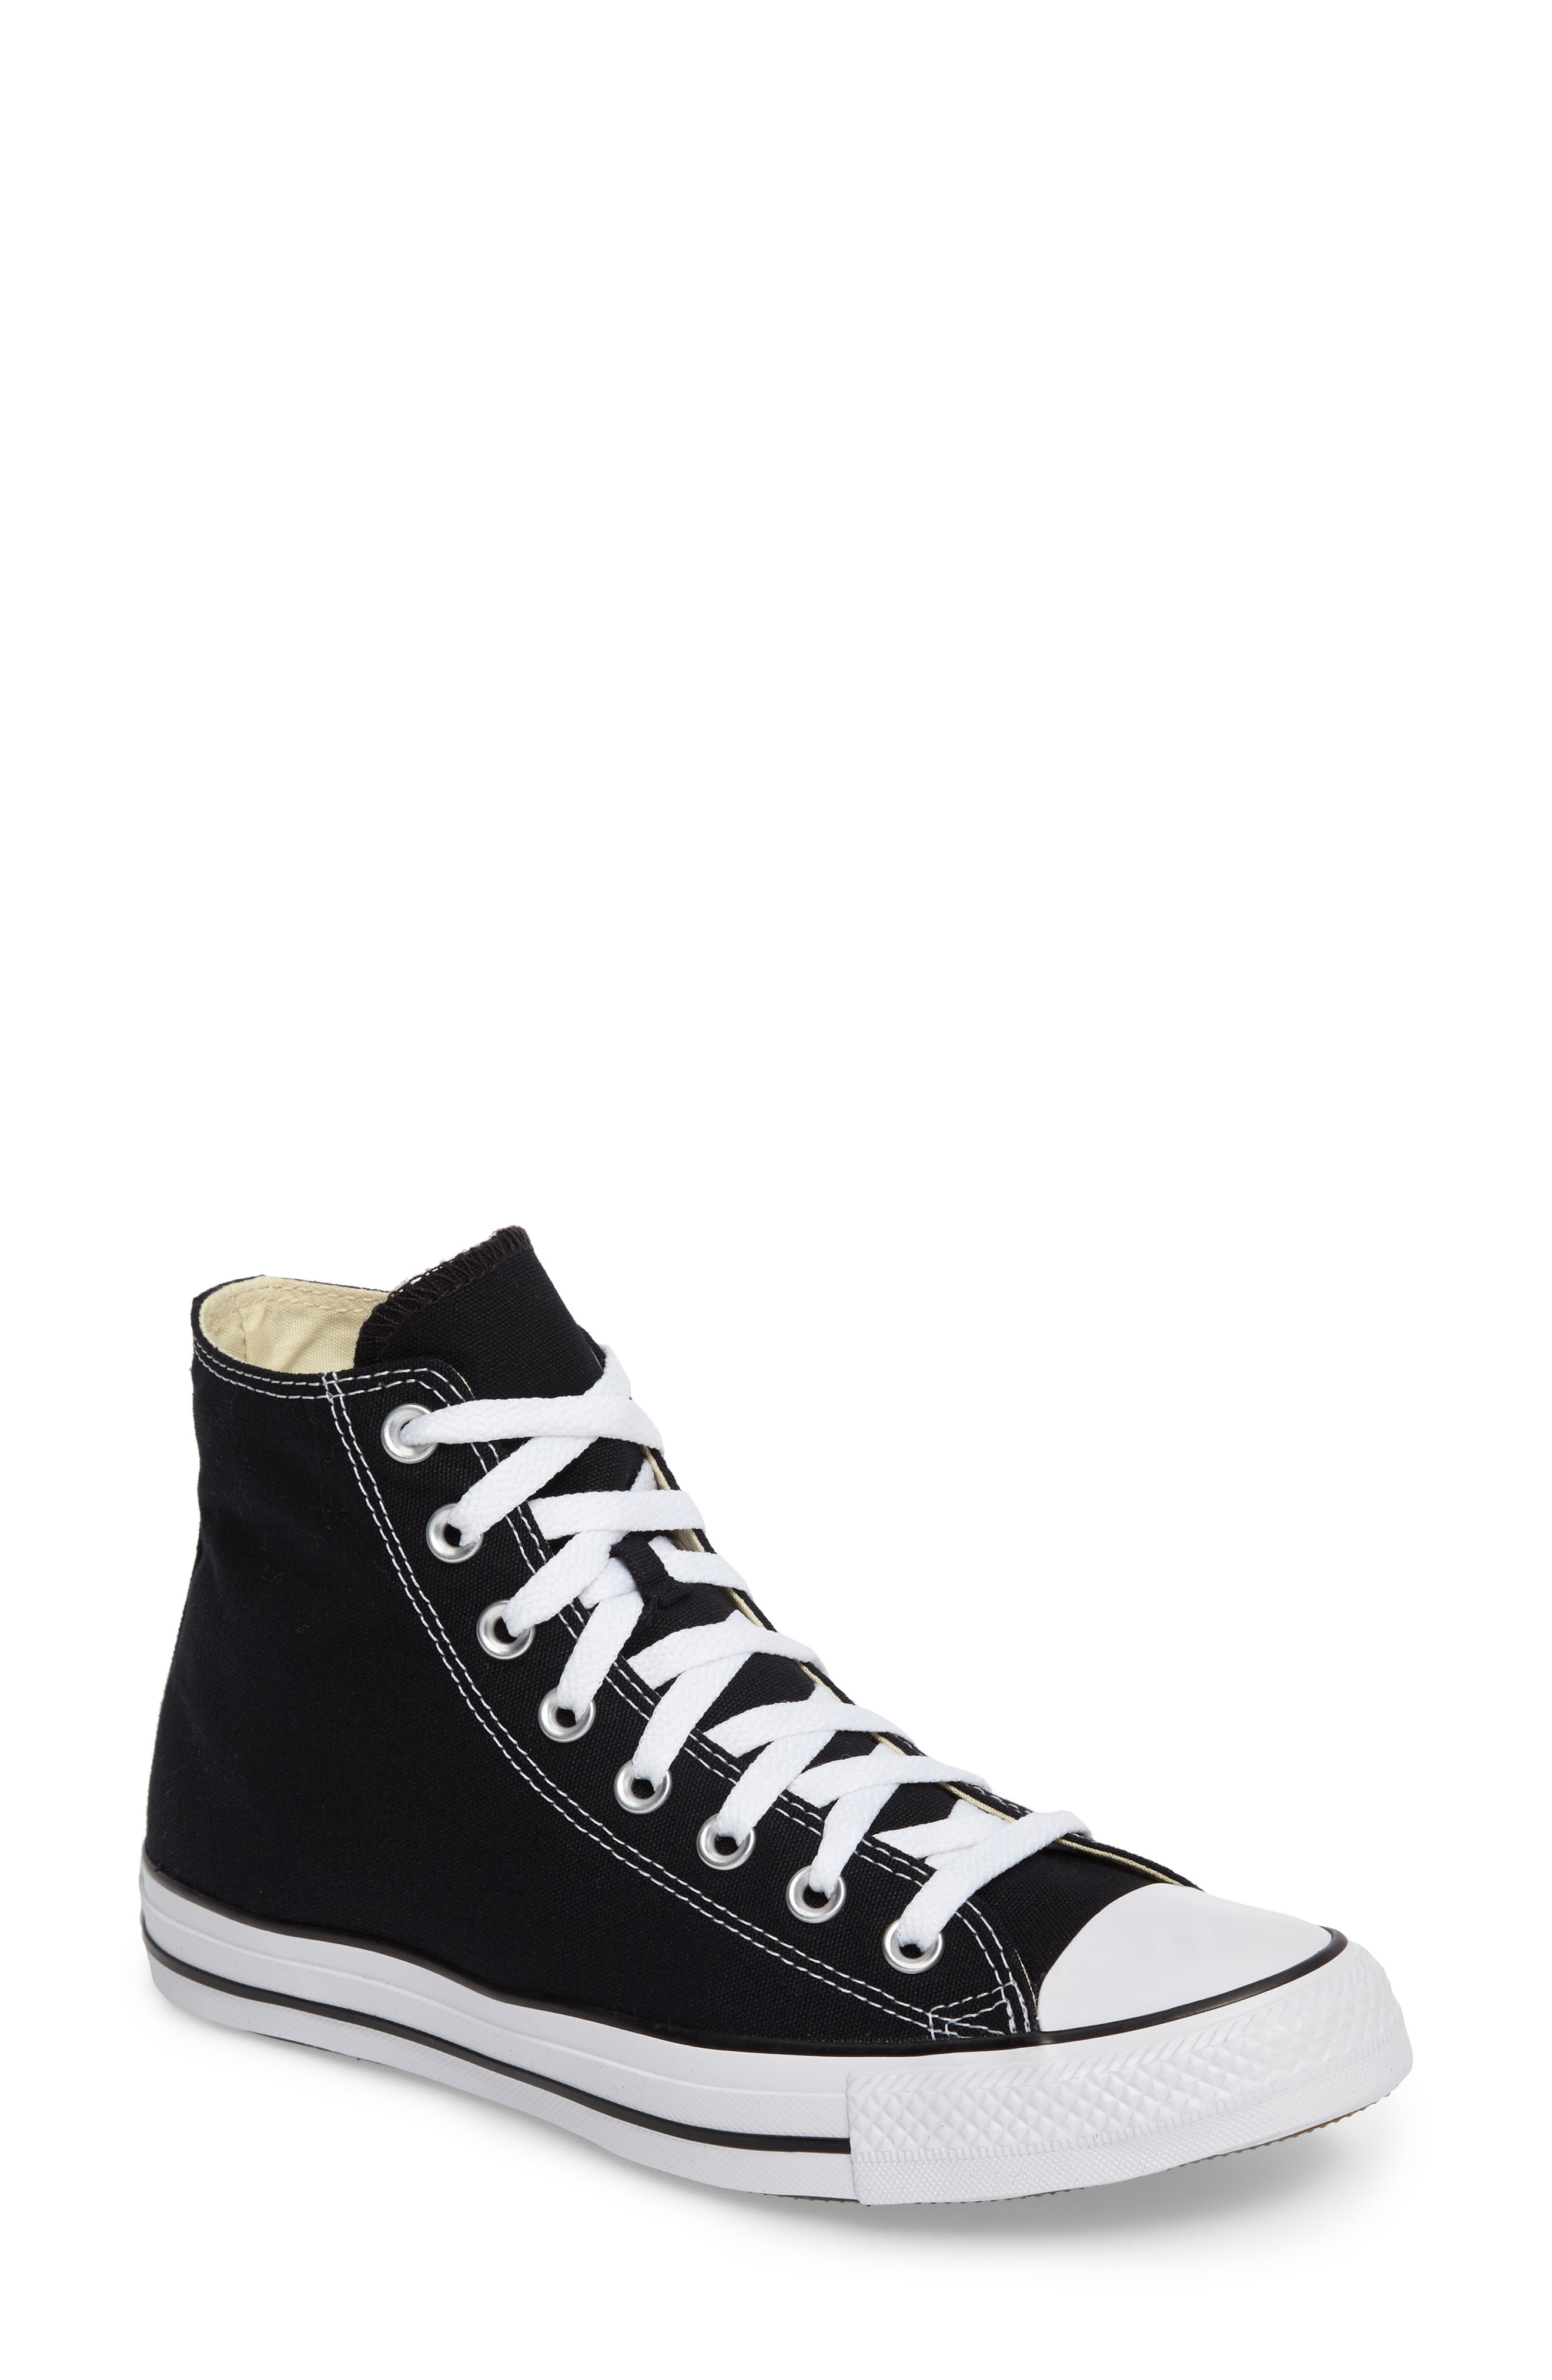 Kendall Jenner donning black Converse ankle canvas shoes